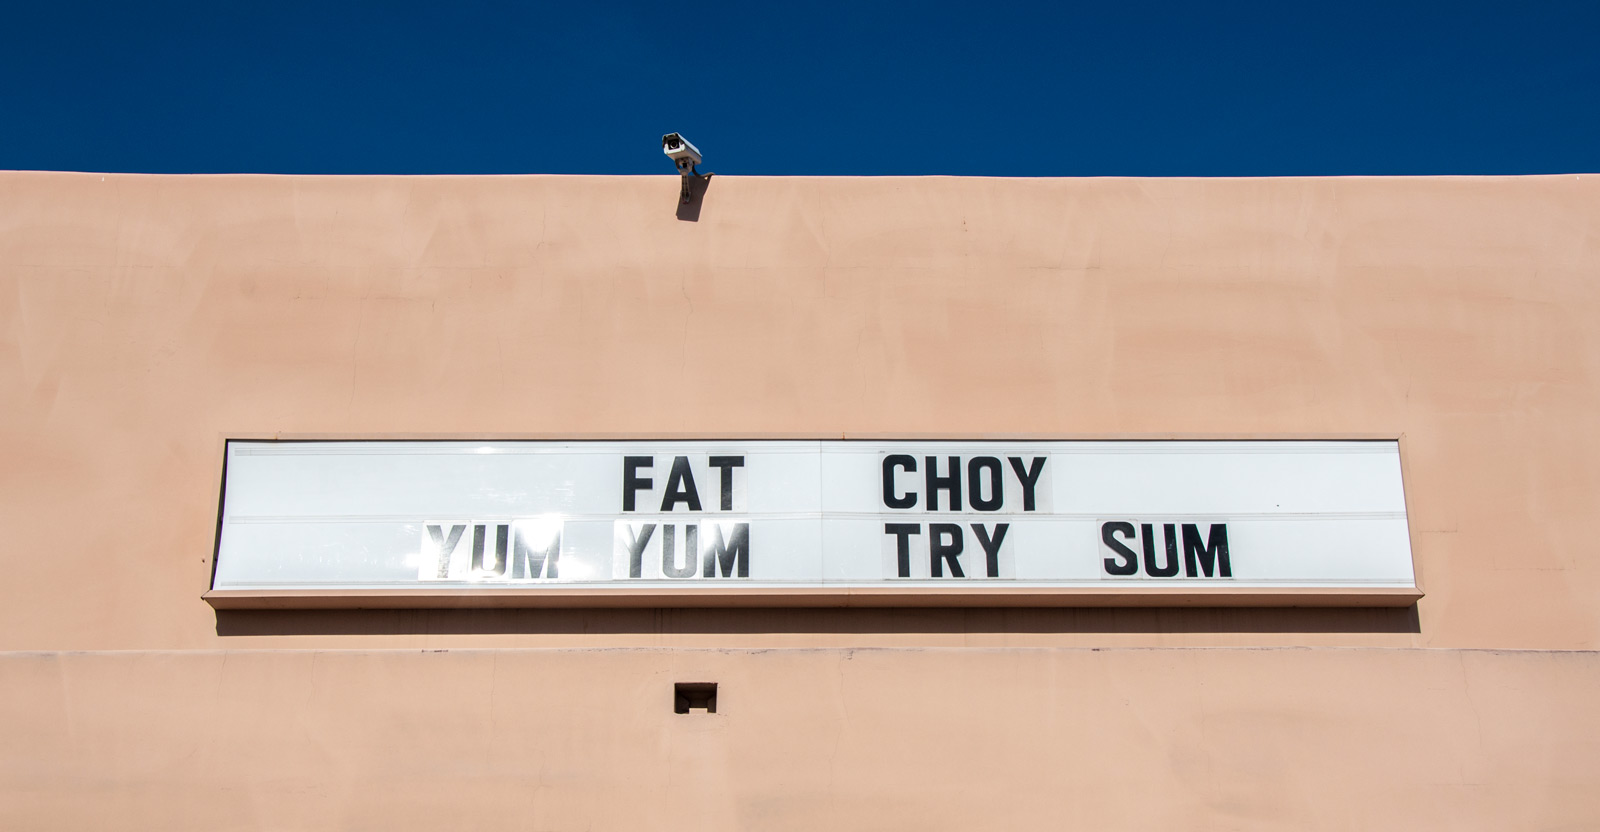 Fat Choy: Yum Yum Try Sum